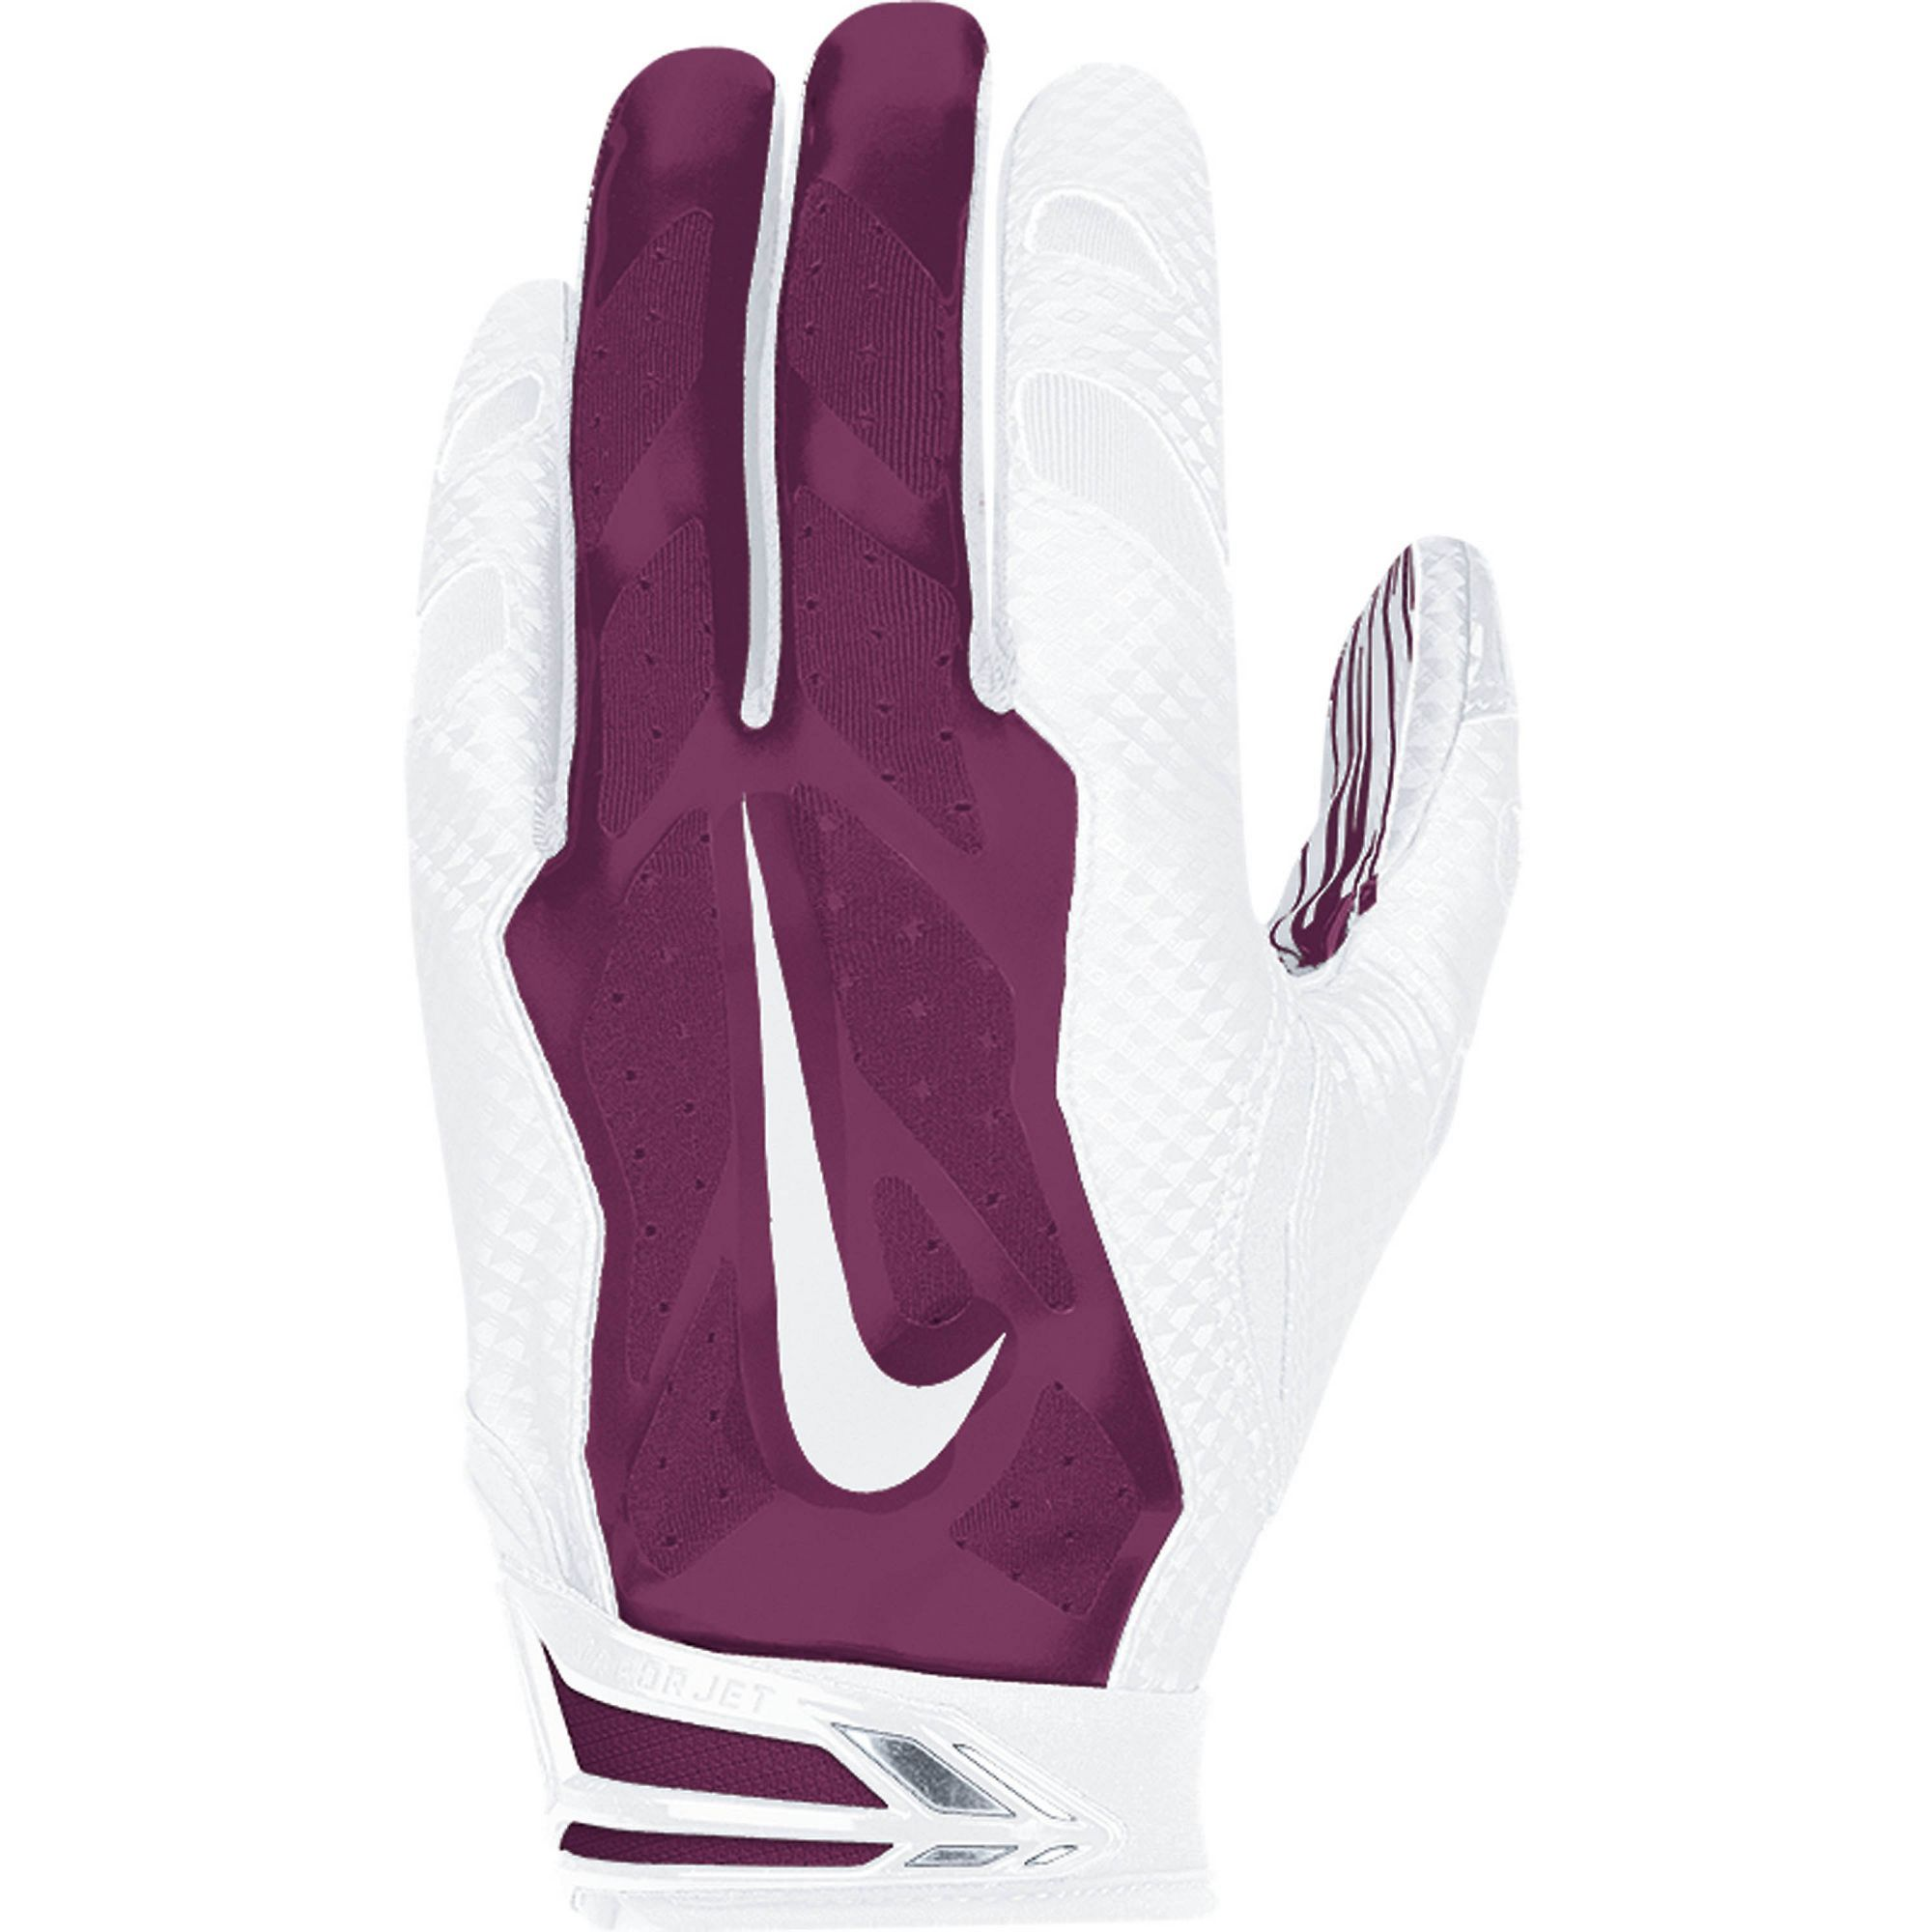 9ee1e931ed9a receiver gloves nike cheap   OFF52% The Largest Catalog Discounts